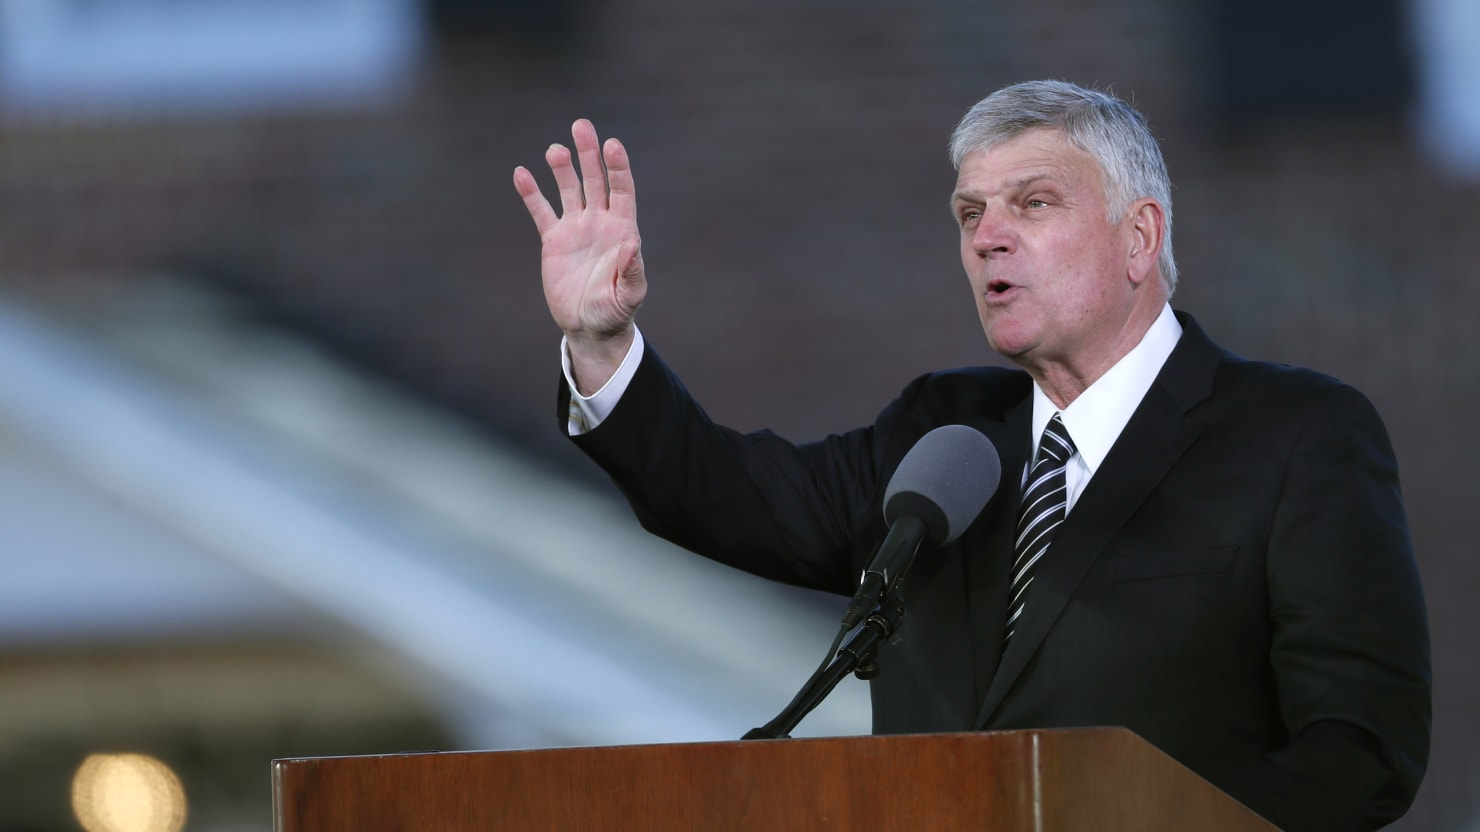 Franklin Graham Calls for Pete Buttigieg to Repent for Being Gay